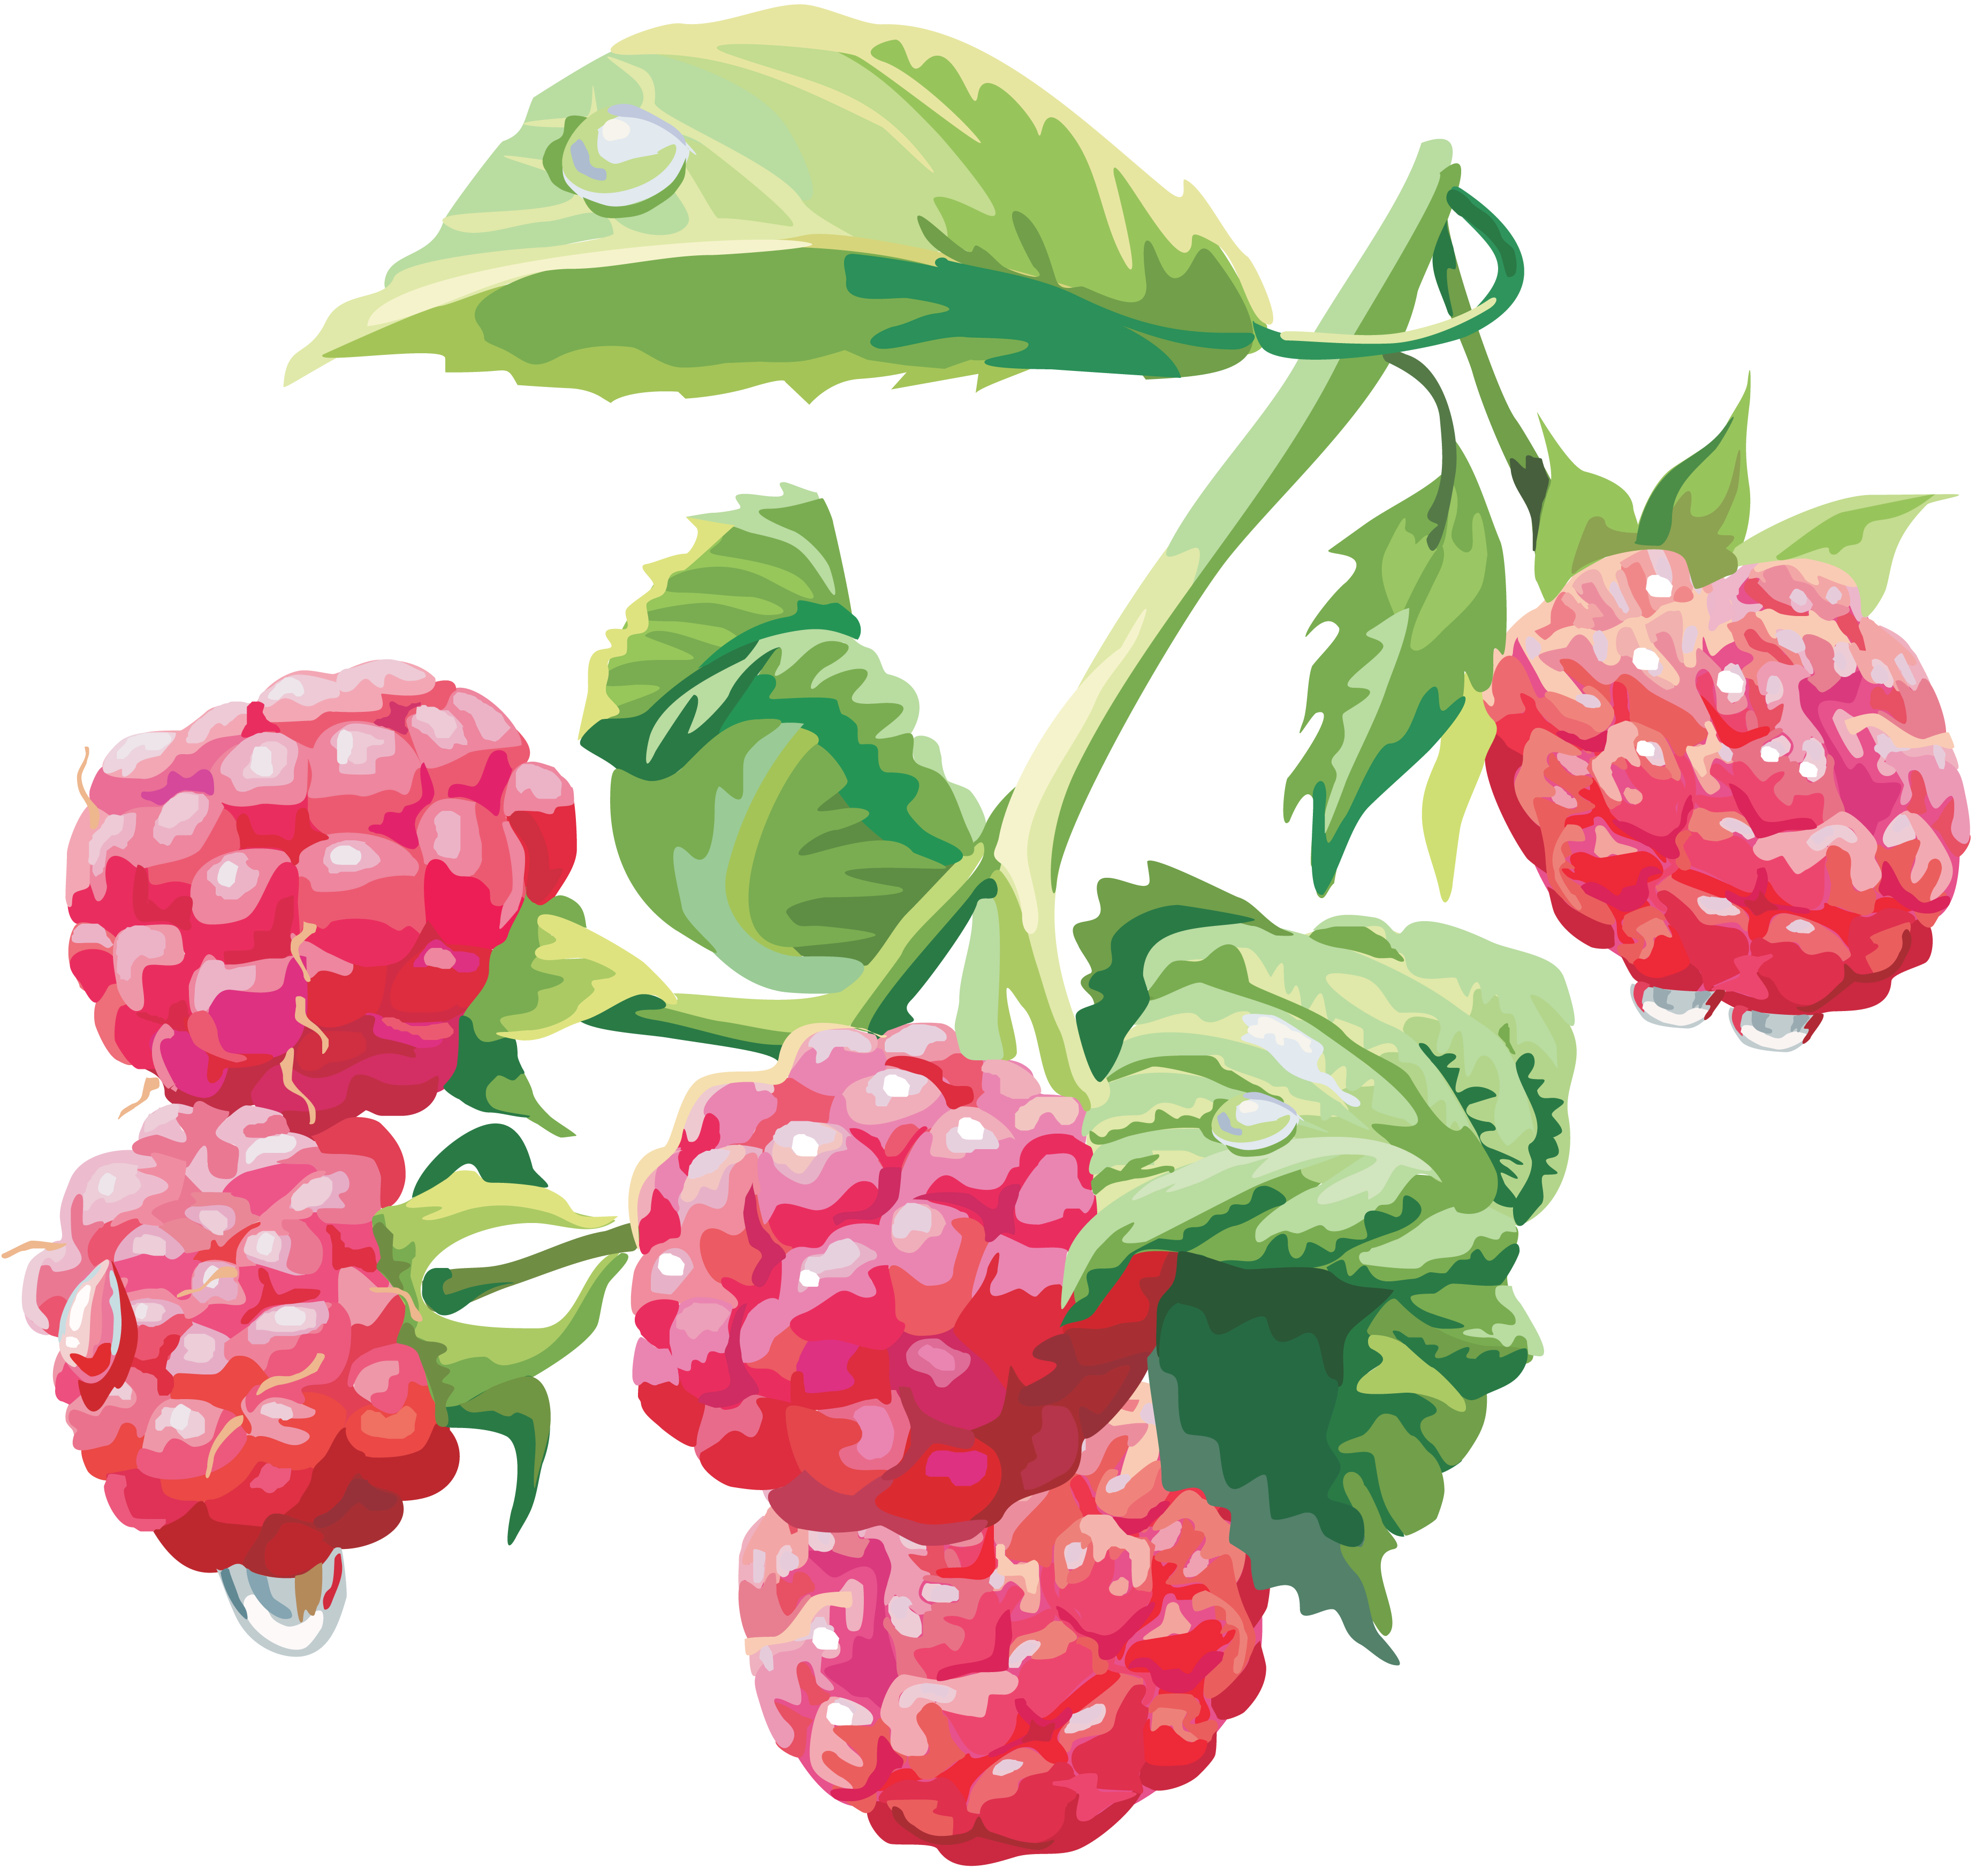 Berries clipart berry plant. Pin by hopeless on